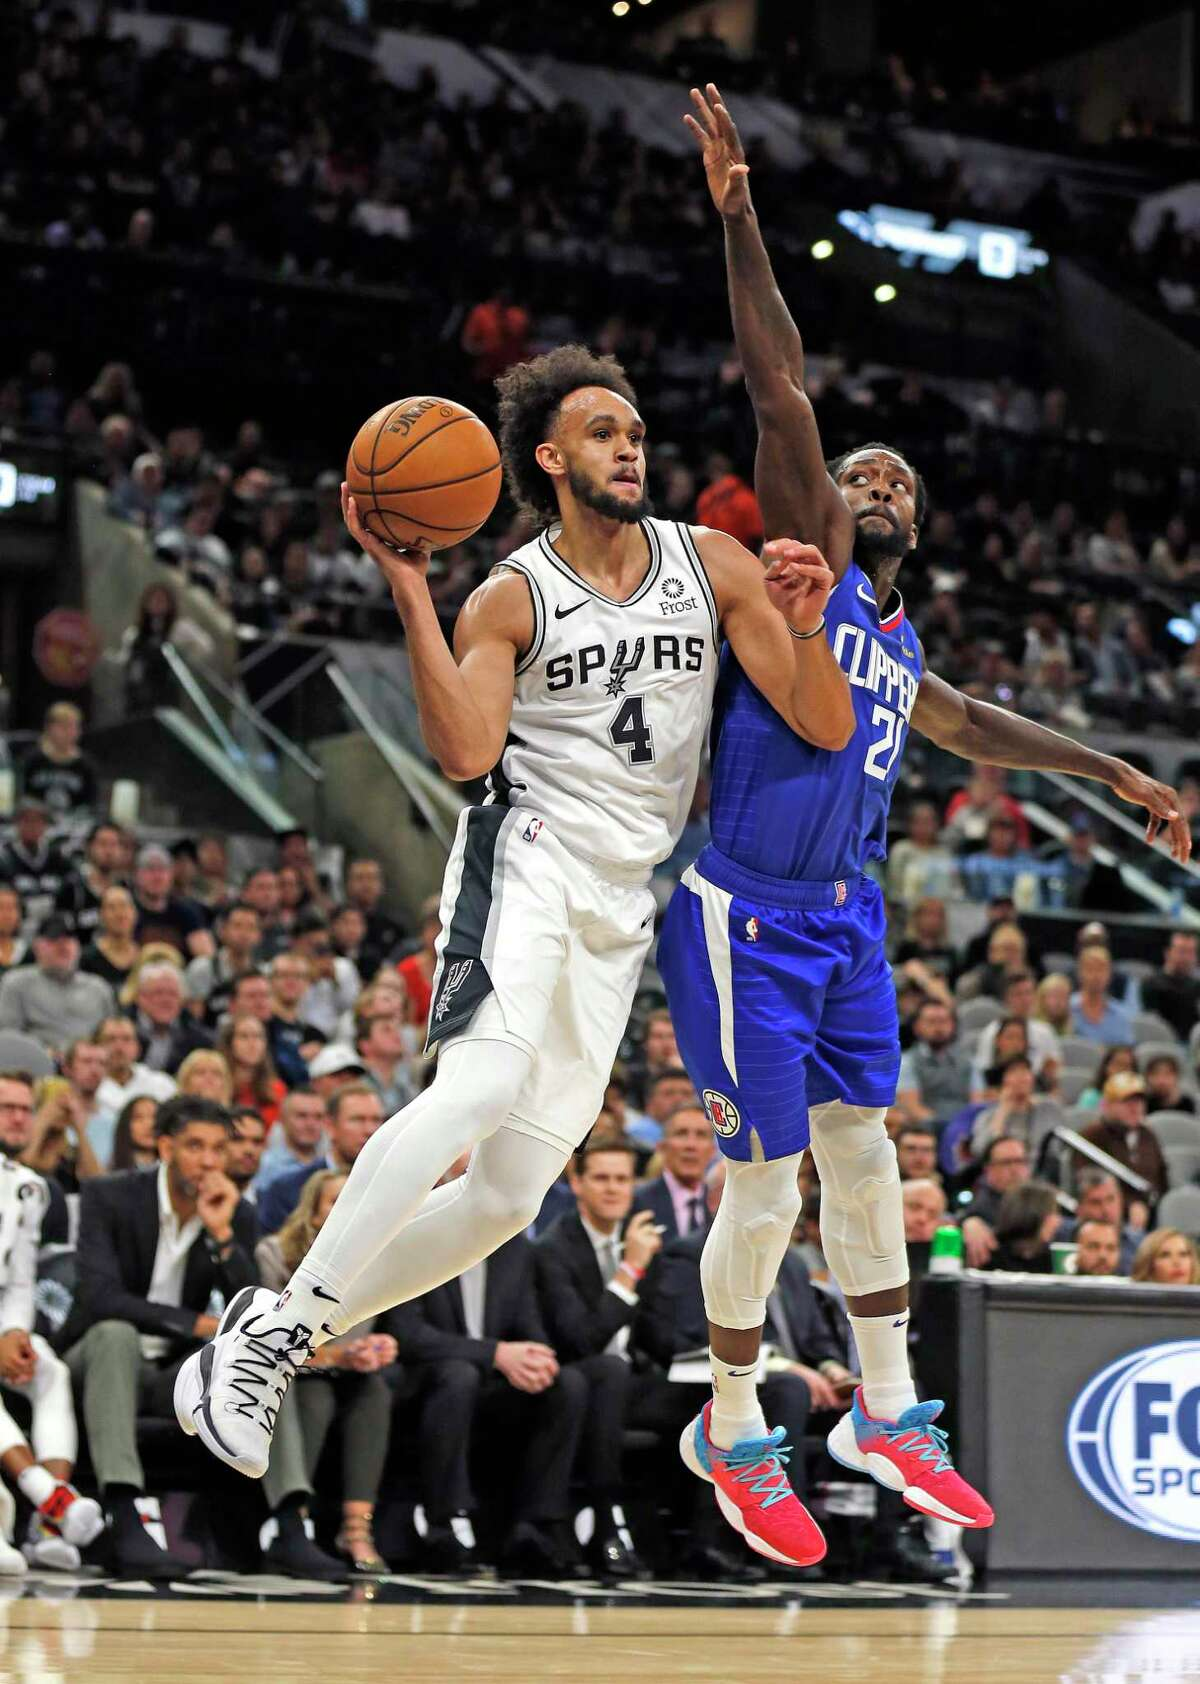 Derrick White #4 of the San Antonio Spurs passes off after being guarded by Kawhi Leonard #2 #2 of the Los Angeles Clippers in the first half of the game between the San Antonio Spurs and the Los Angeles Clippers on Friday, November 29,2019 at AT&T Center